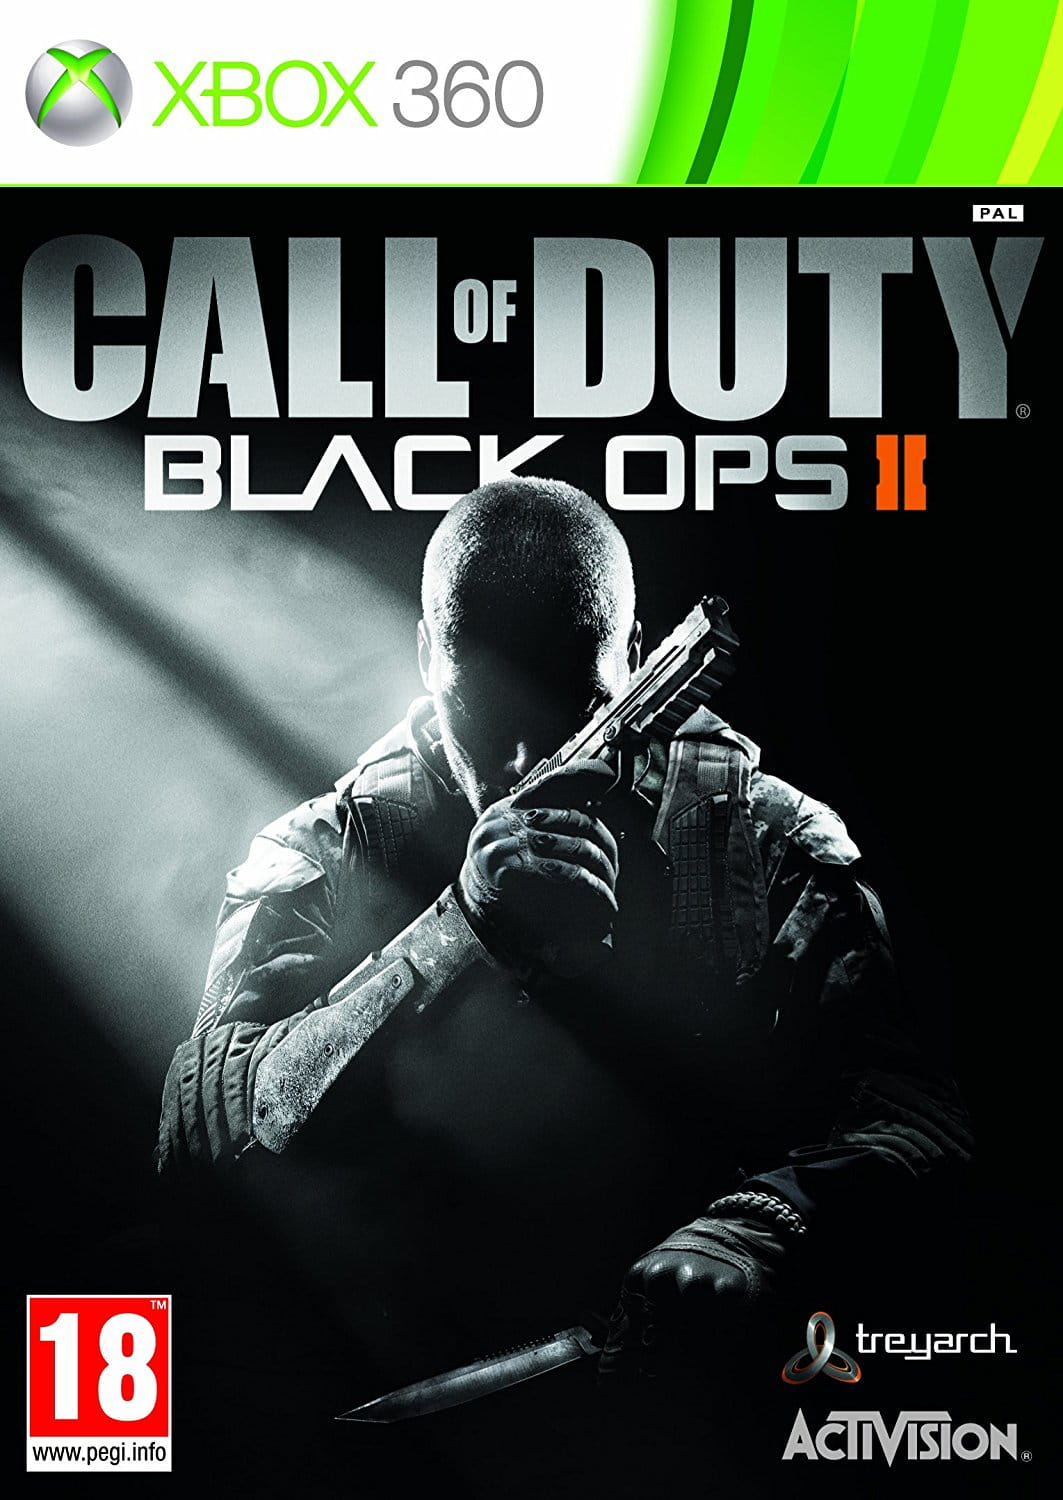 Call of Duty Black Ops 2 Używana XBOX 360